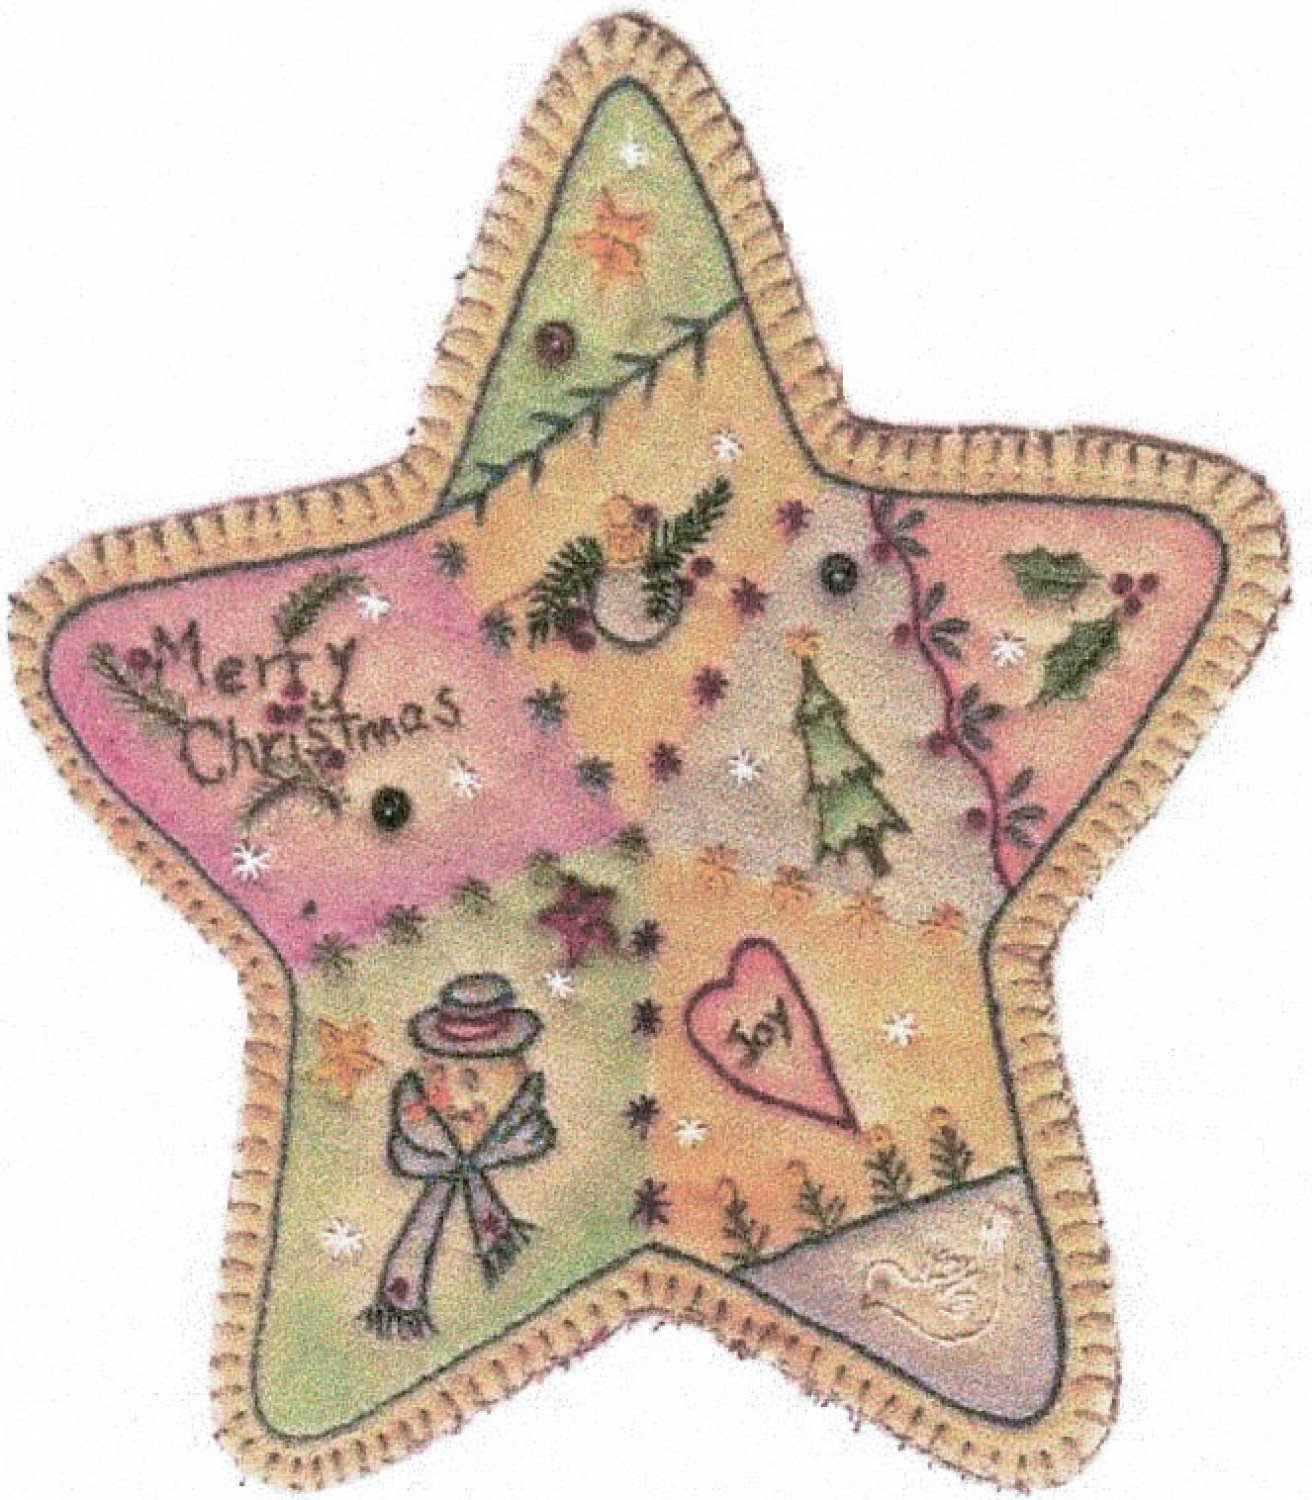 Vintage Christmas Ornament - CDHV03 - Star